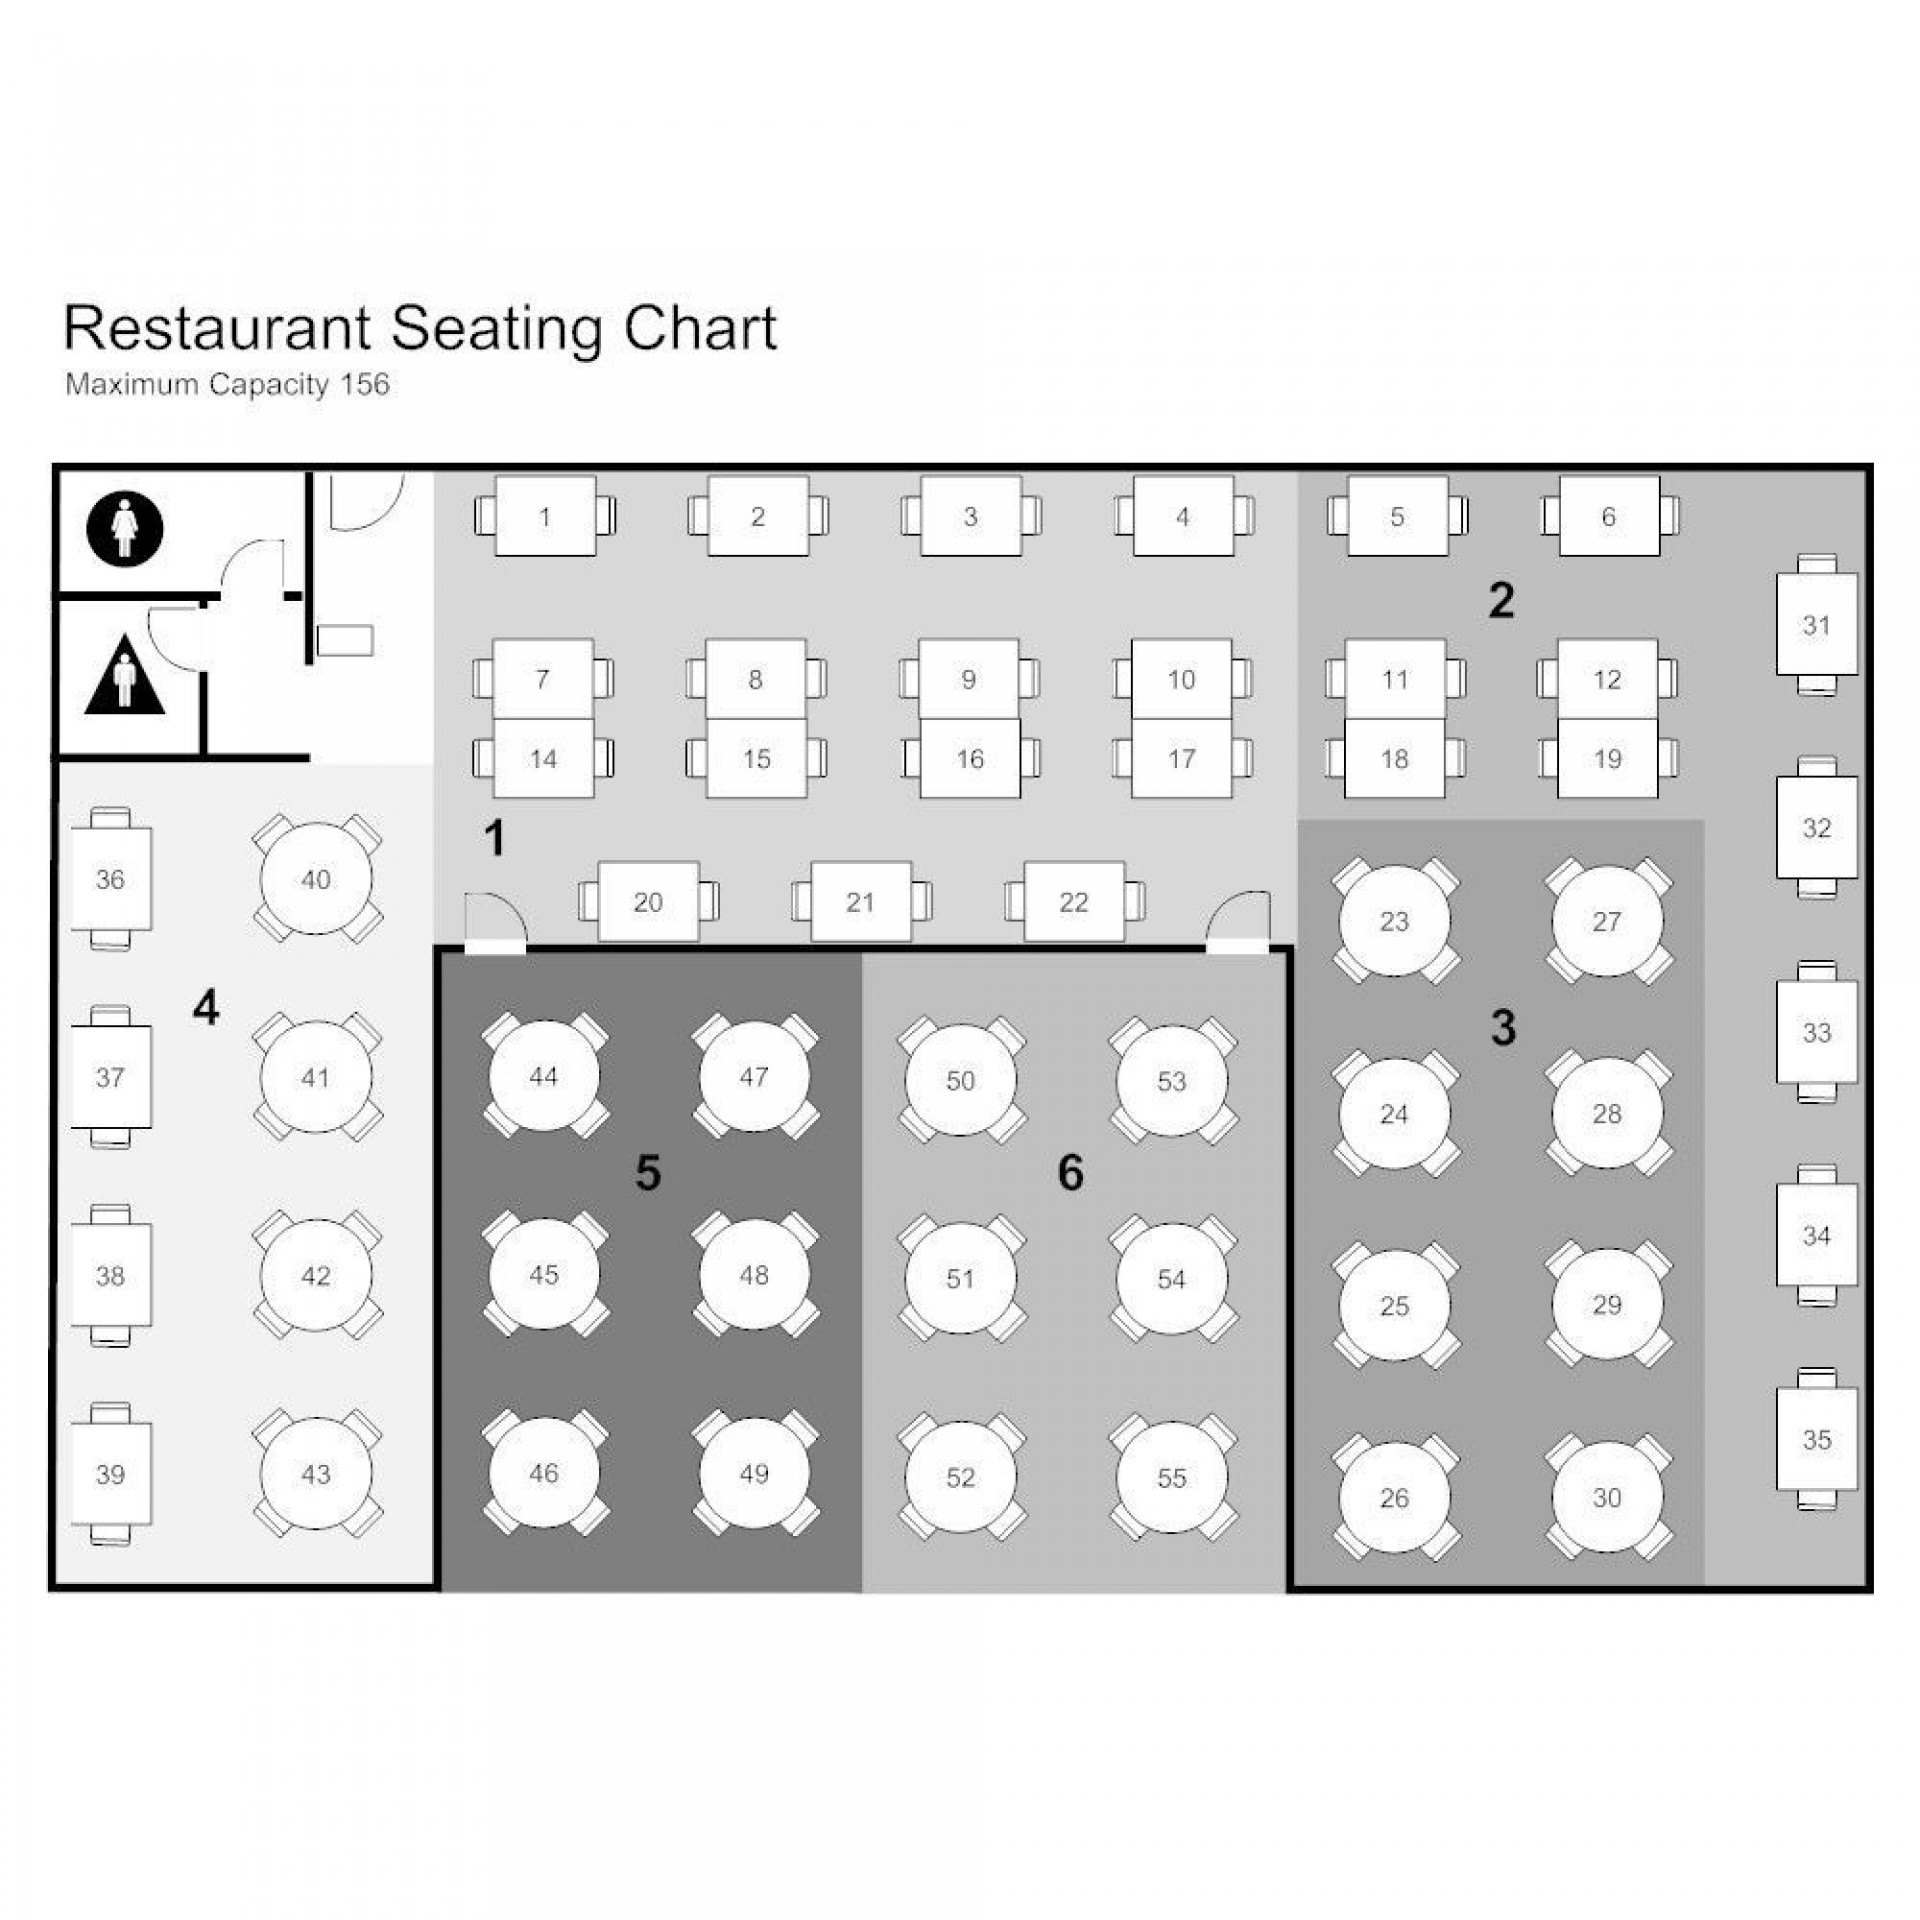 003 Stupendou Restaurant Seating Chart Template Highest Quality  Software Excel Word1920